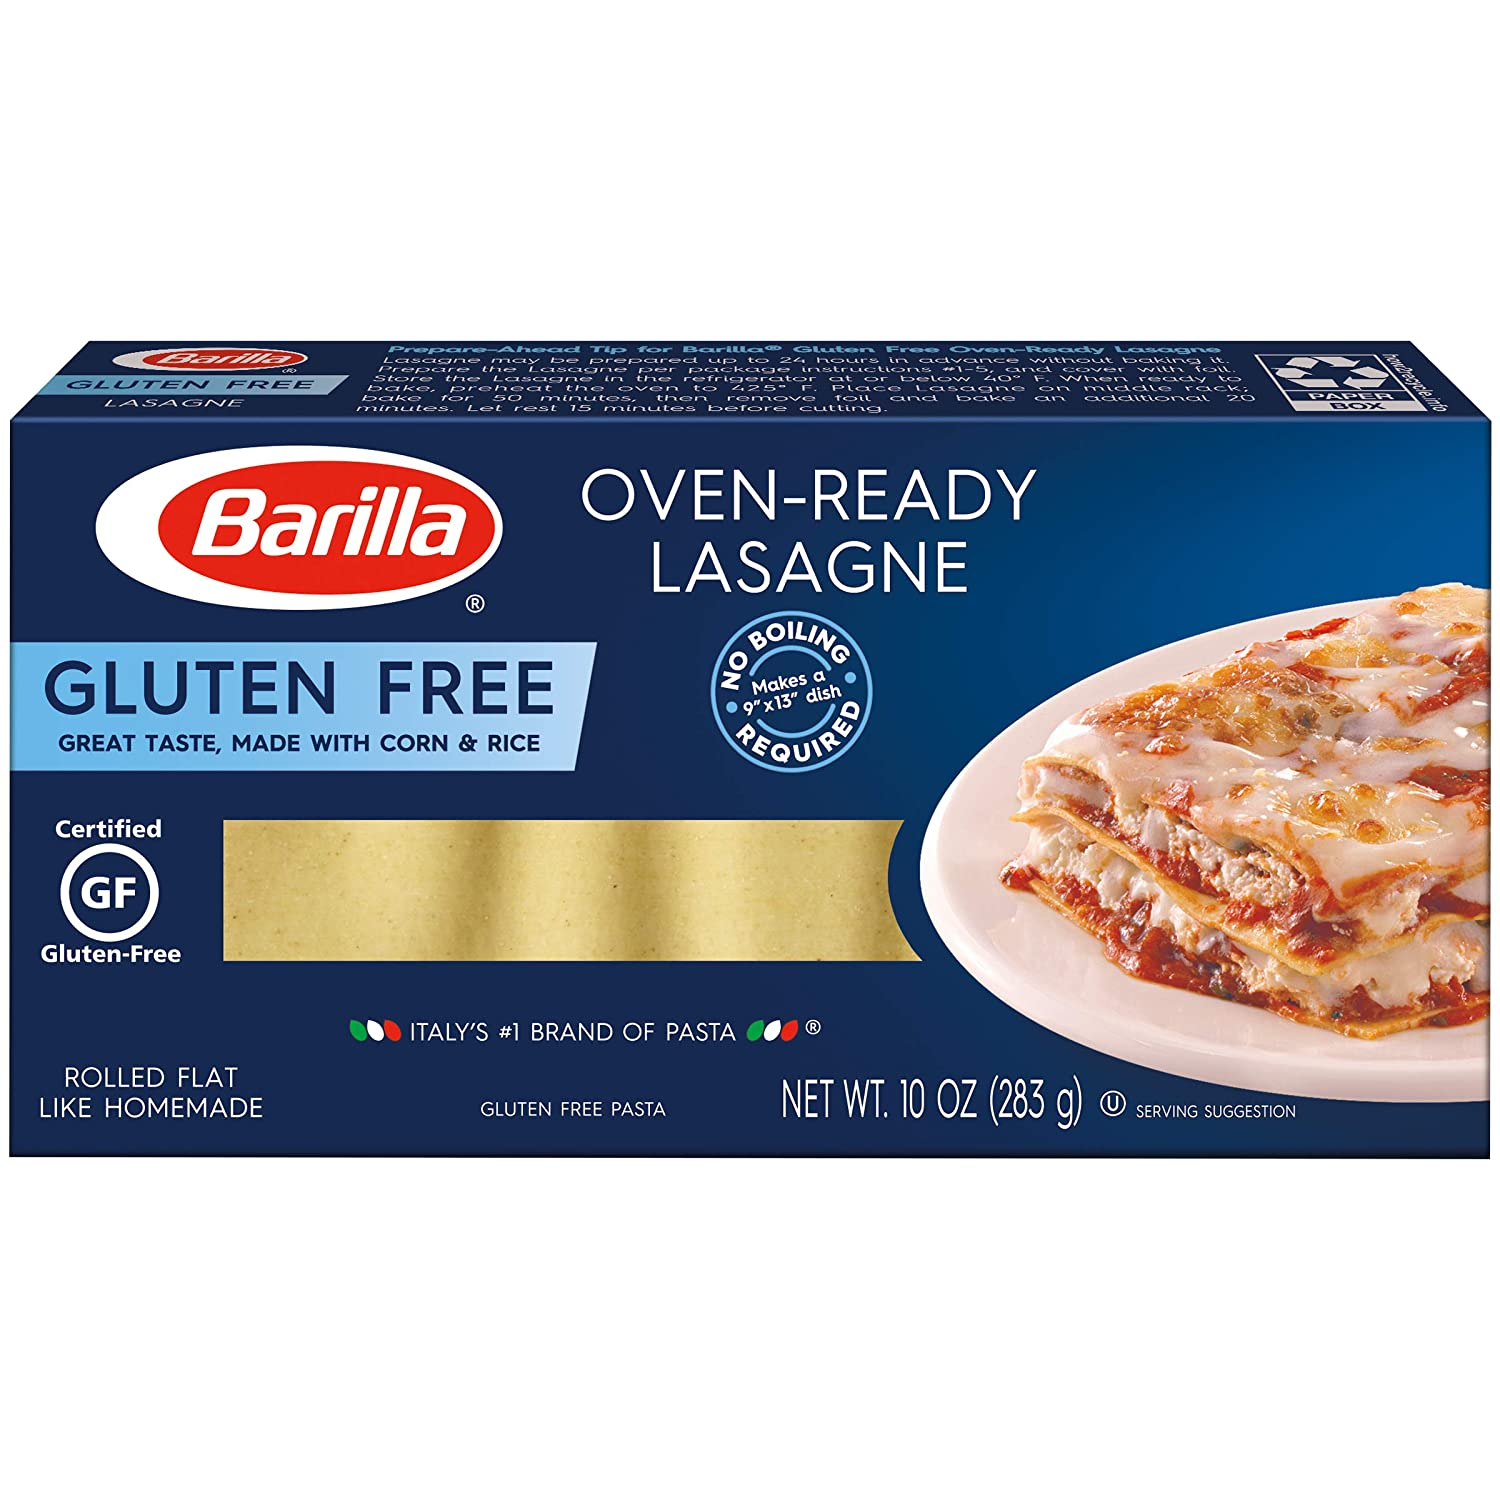 Amazon Com Barilla Gluten Free Oven Ready Lasagne 10 Ounce Pack Of 12 Non Gmo Gluten Free Pasta Made With Blend Of Corn Rice Vegan Pasta Grocery Gourmet Food